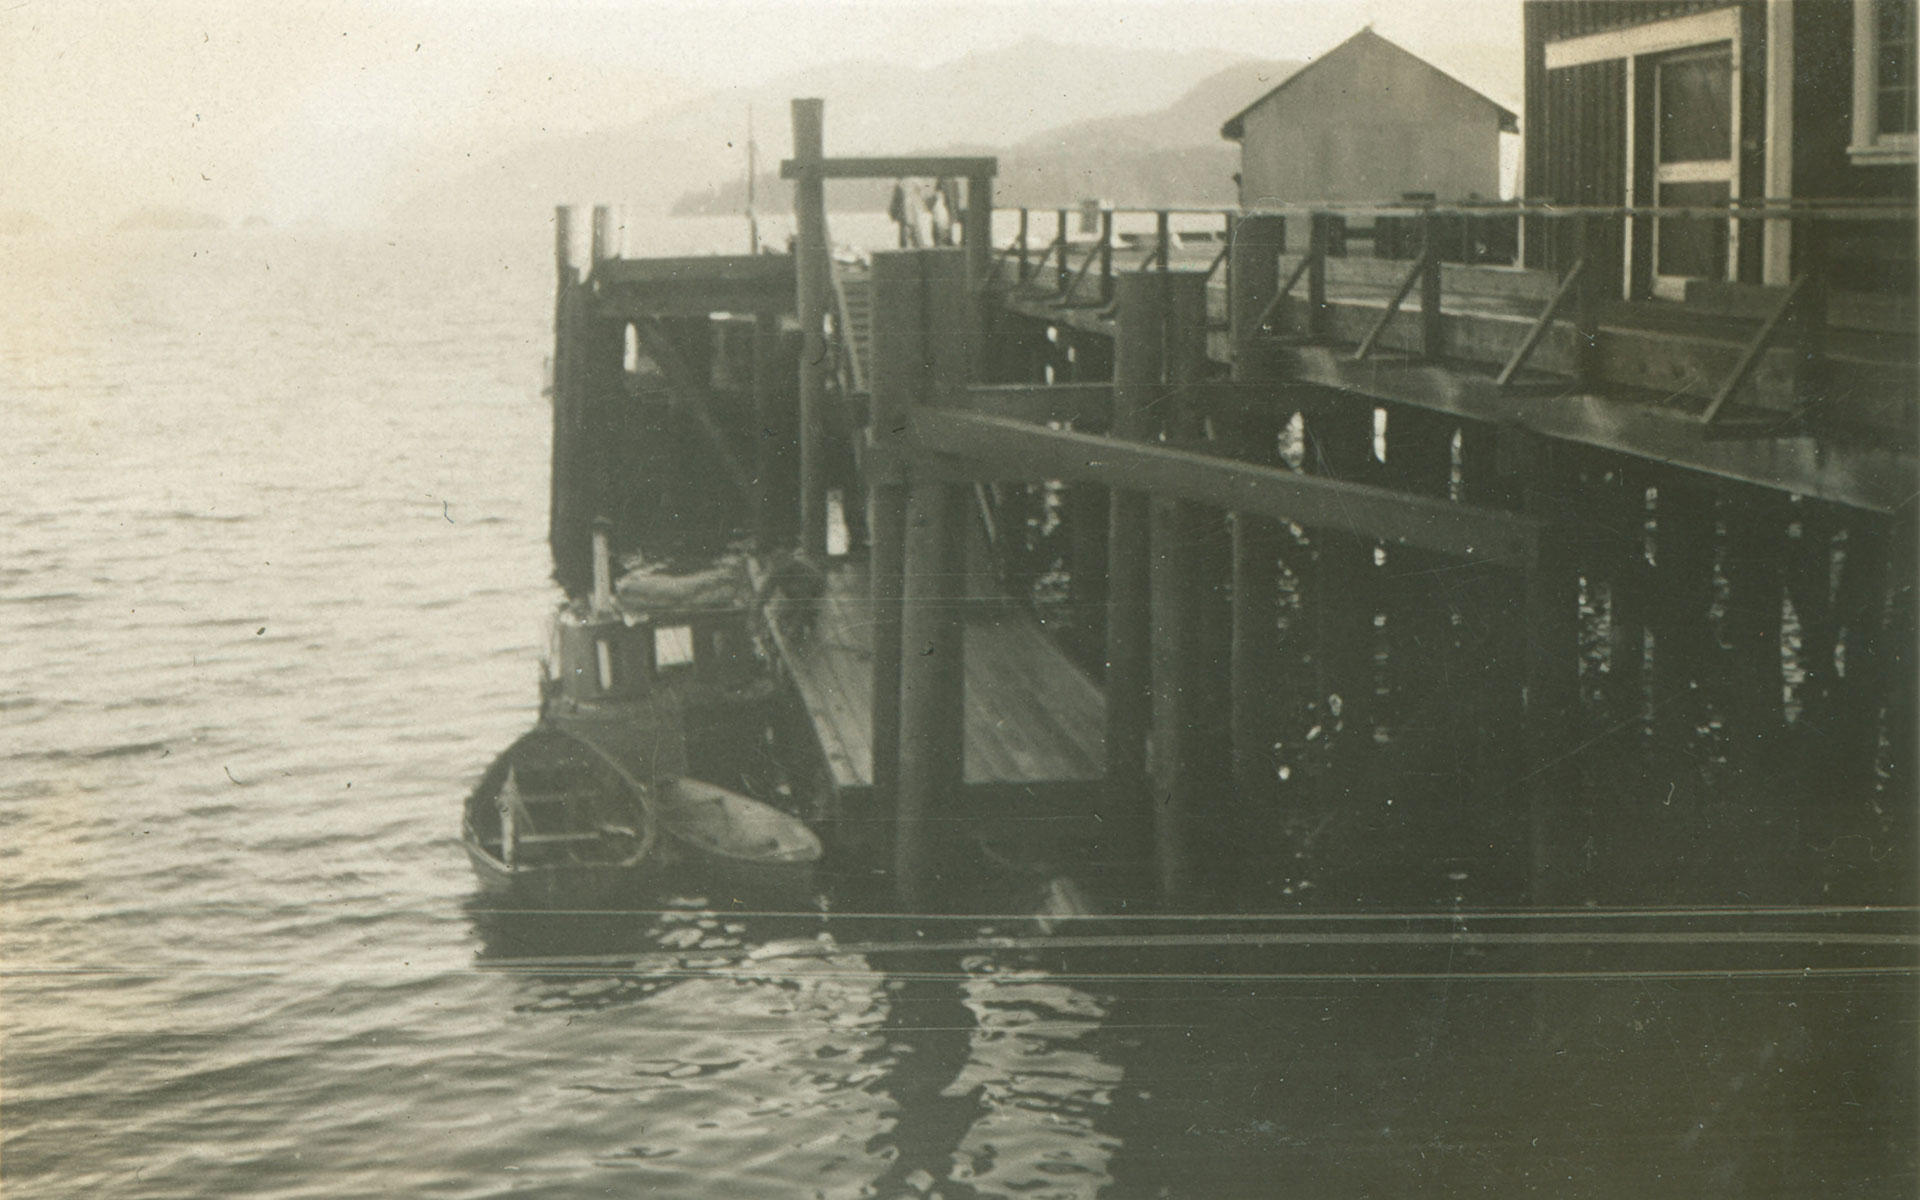 A section of the docks at Nootka with moored fishing boats. Two skiffs and a gillnetter are tied to the dock.